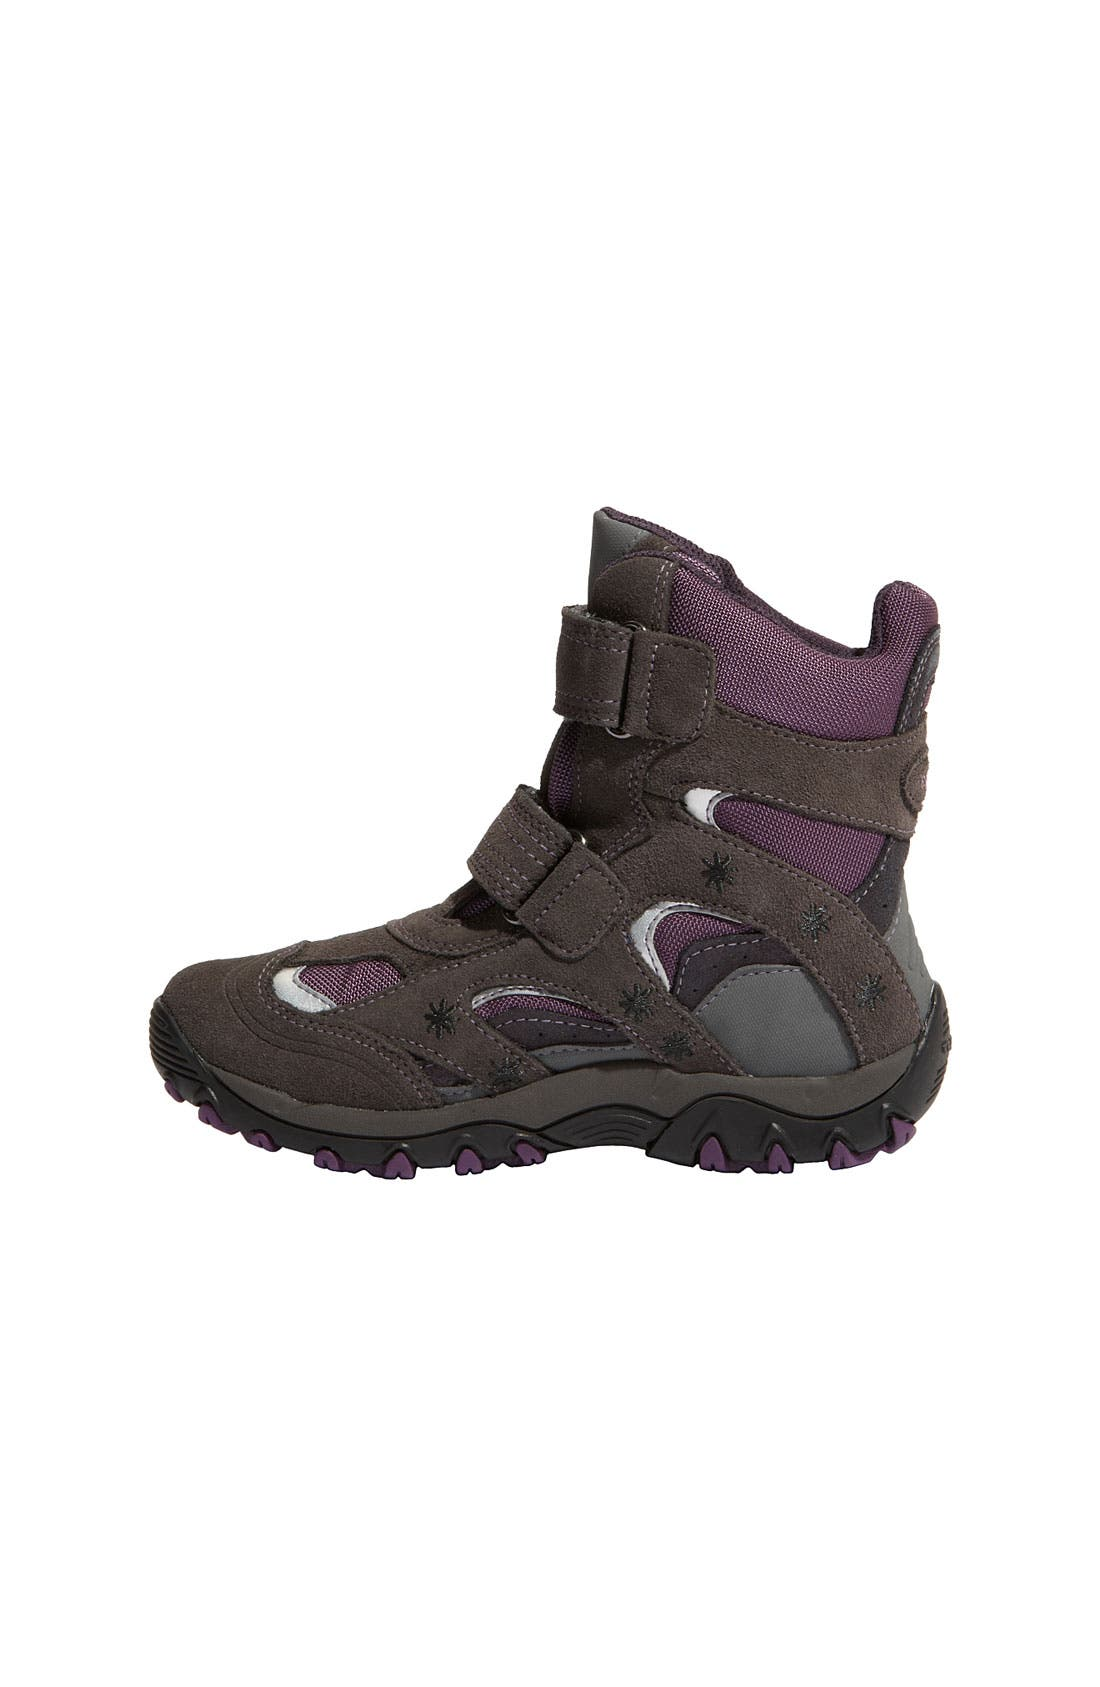 Alternate Image 2  - Geox 'Alaska' Boot (Toddler, Little Kid & Big Kid)